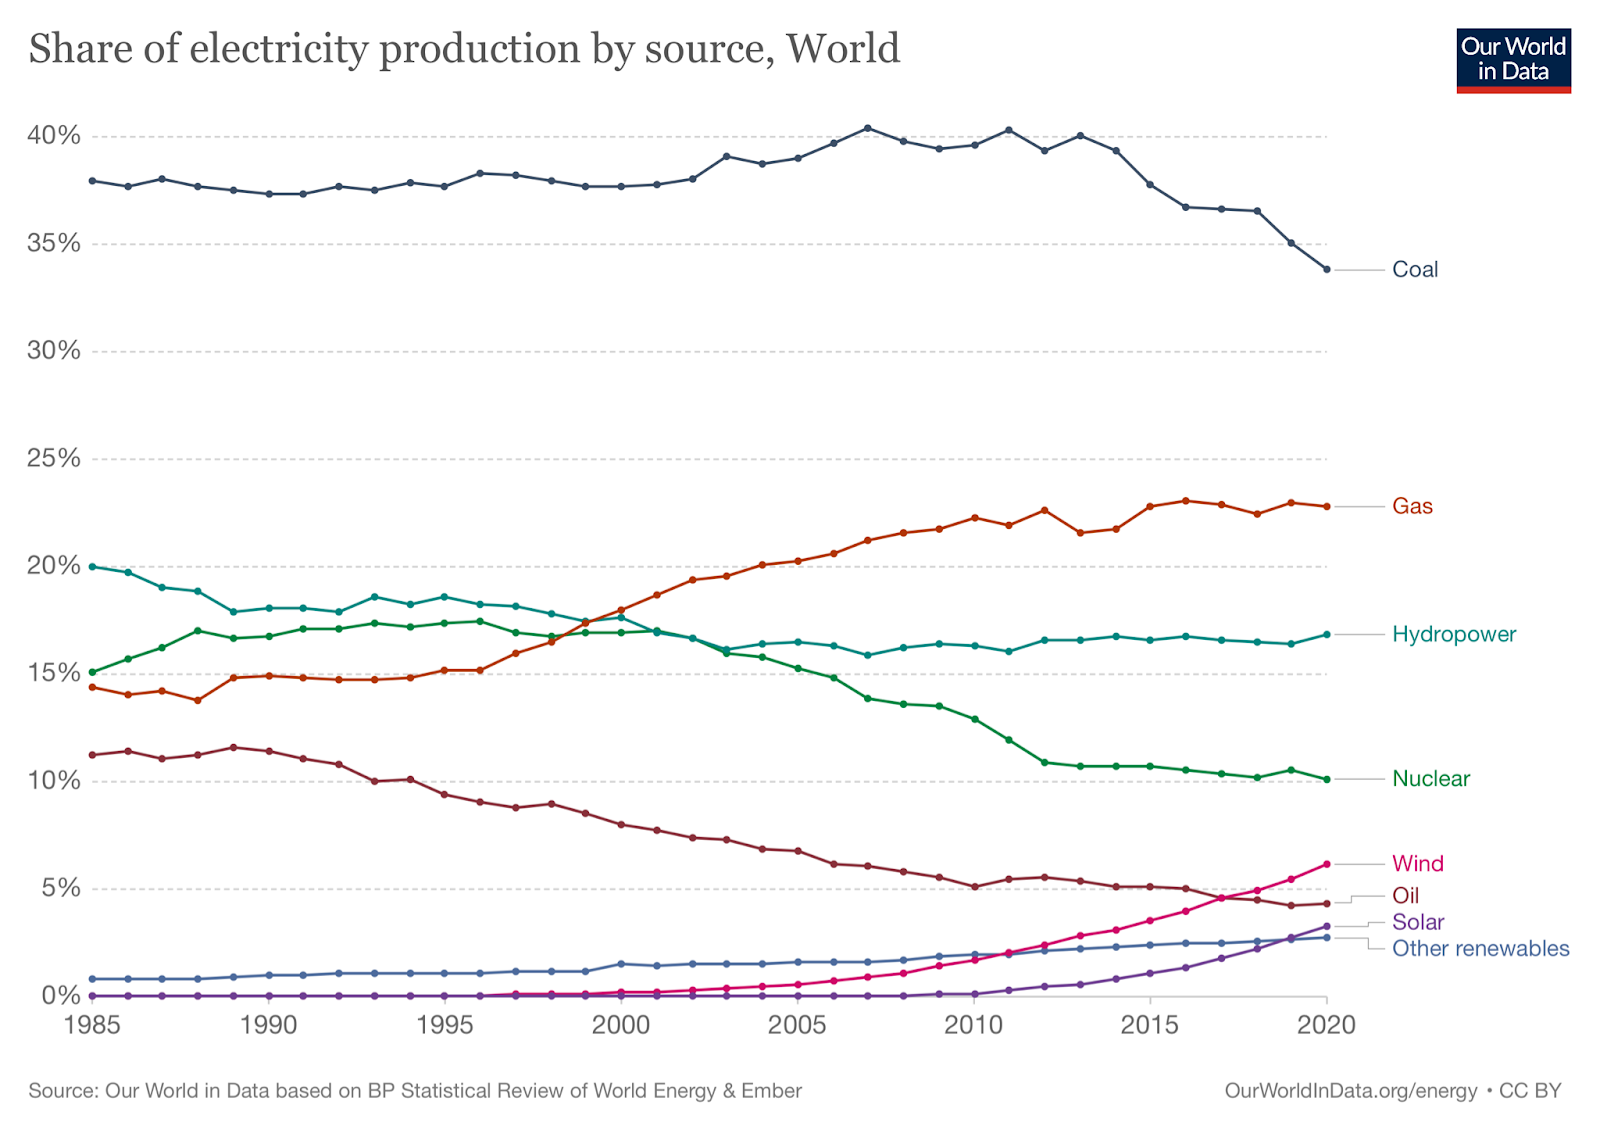 Renewable Energy Trends, Share of electricity production by source, World